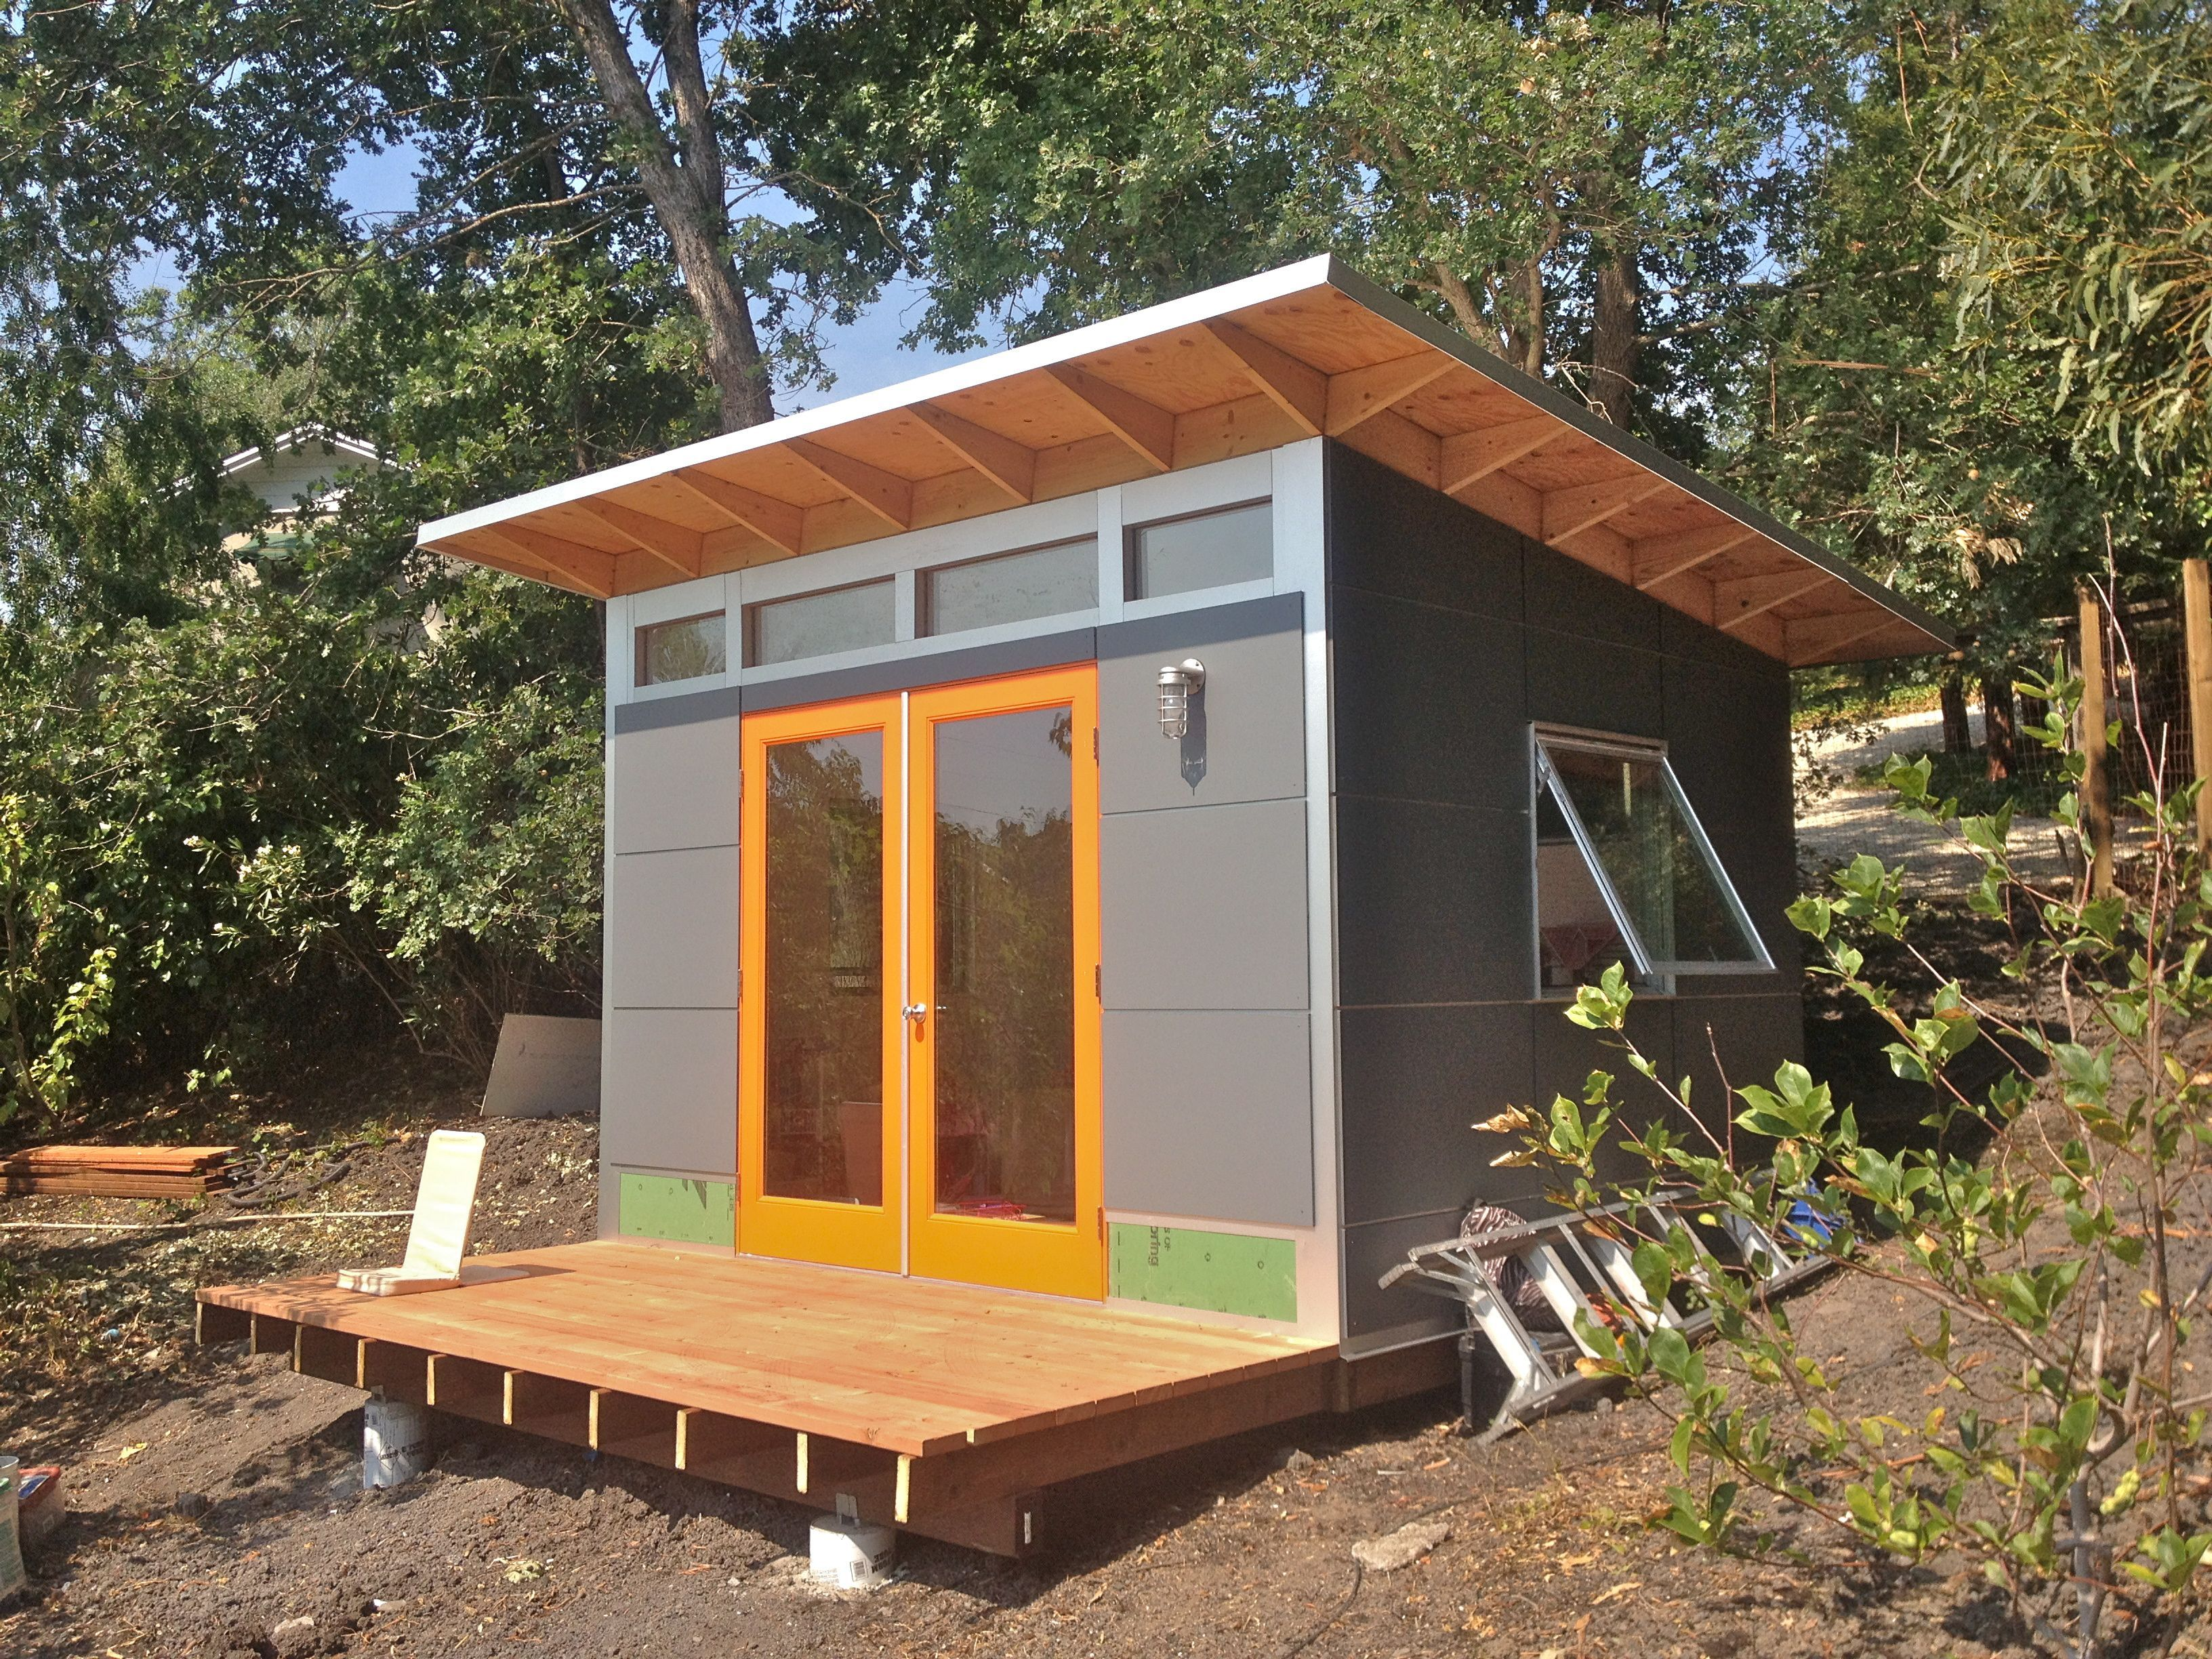 ^ 1000+ ideas about Studio Shed on Pinterest Backyard studio, rt ...